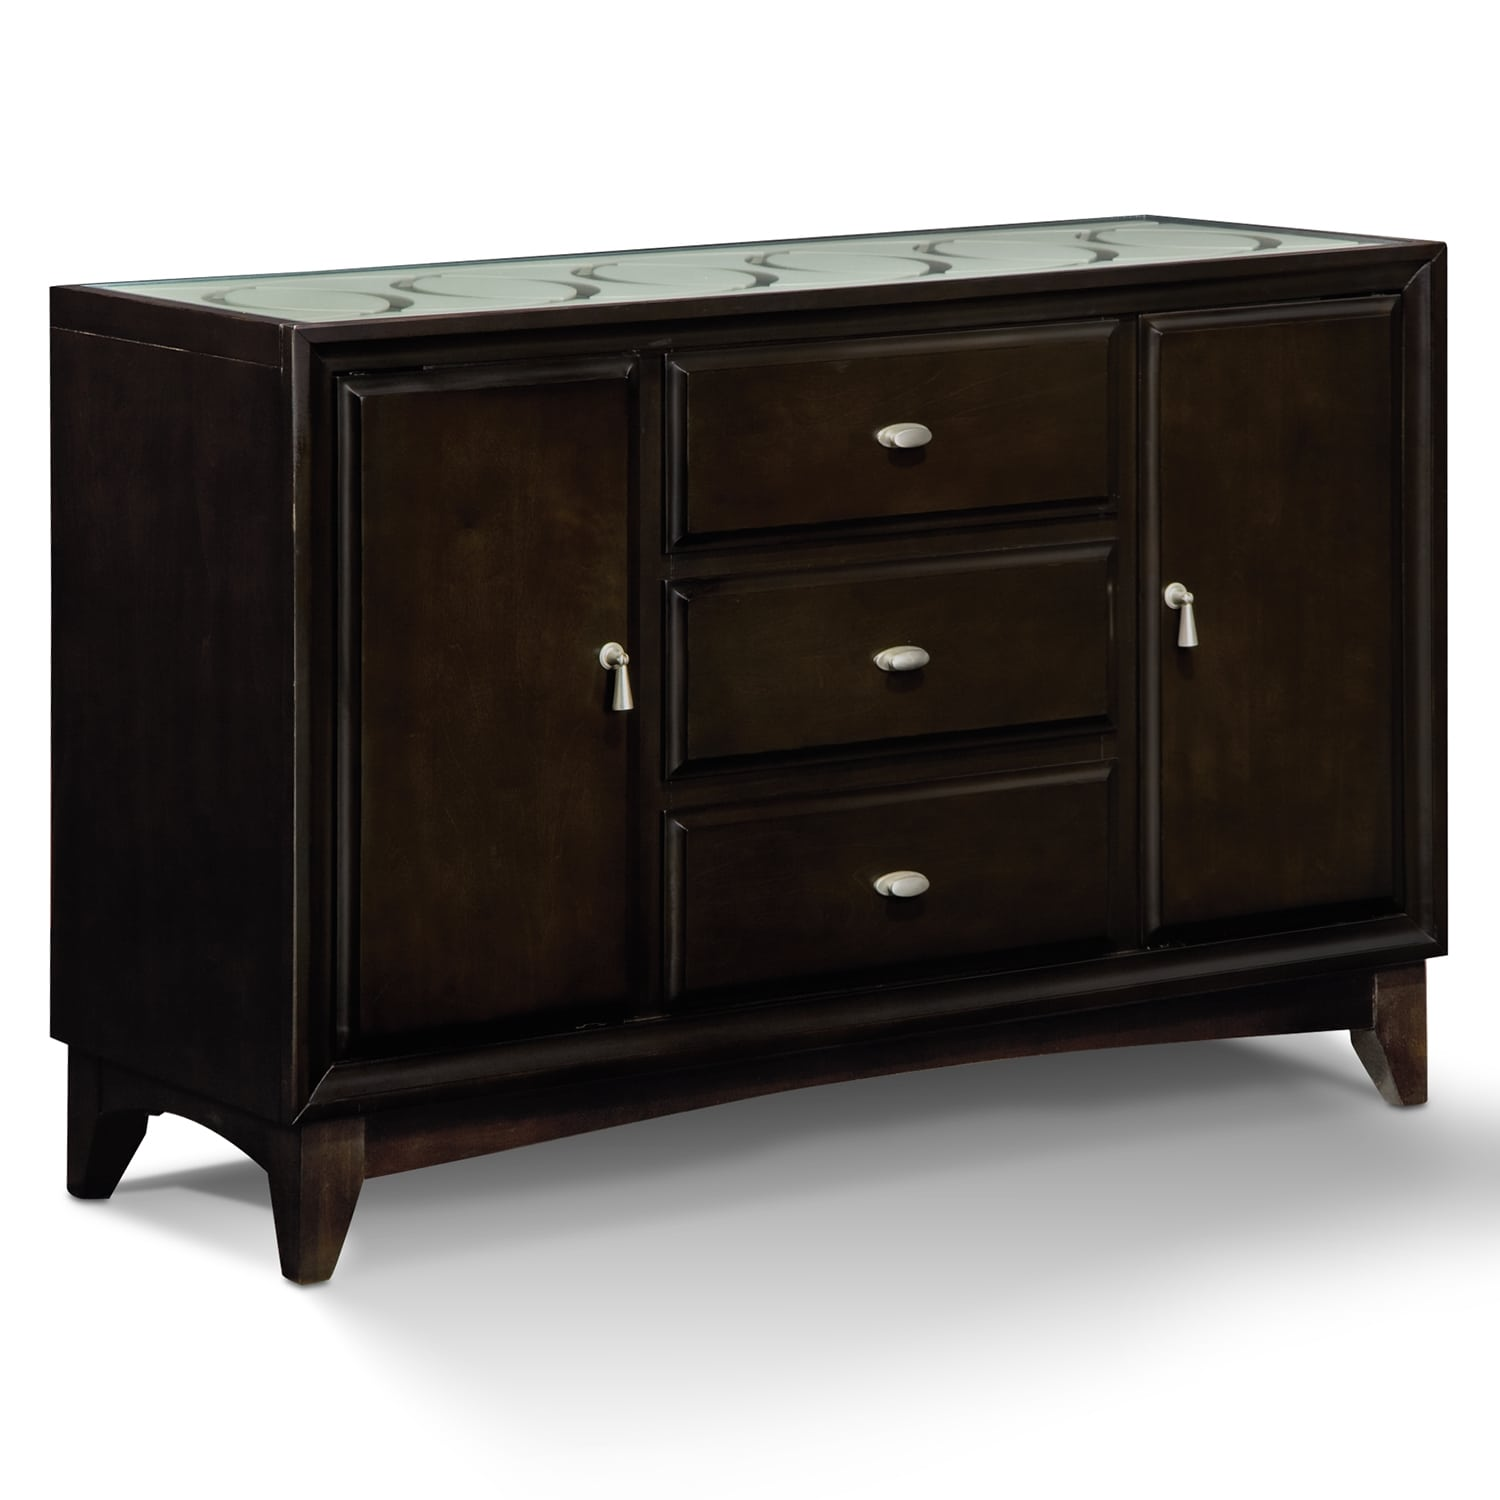 Dining Room Furniture - Cosmo Sideboard - Merlot